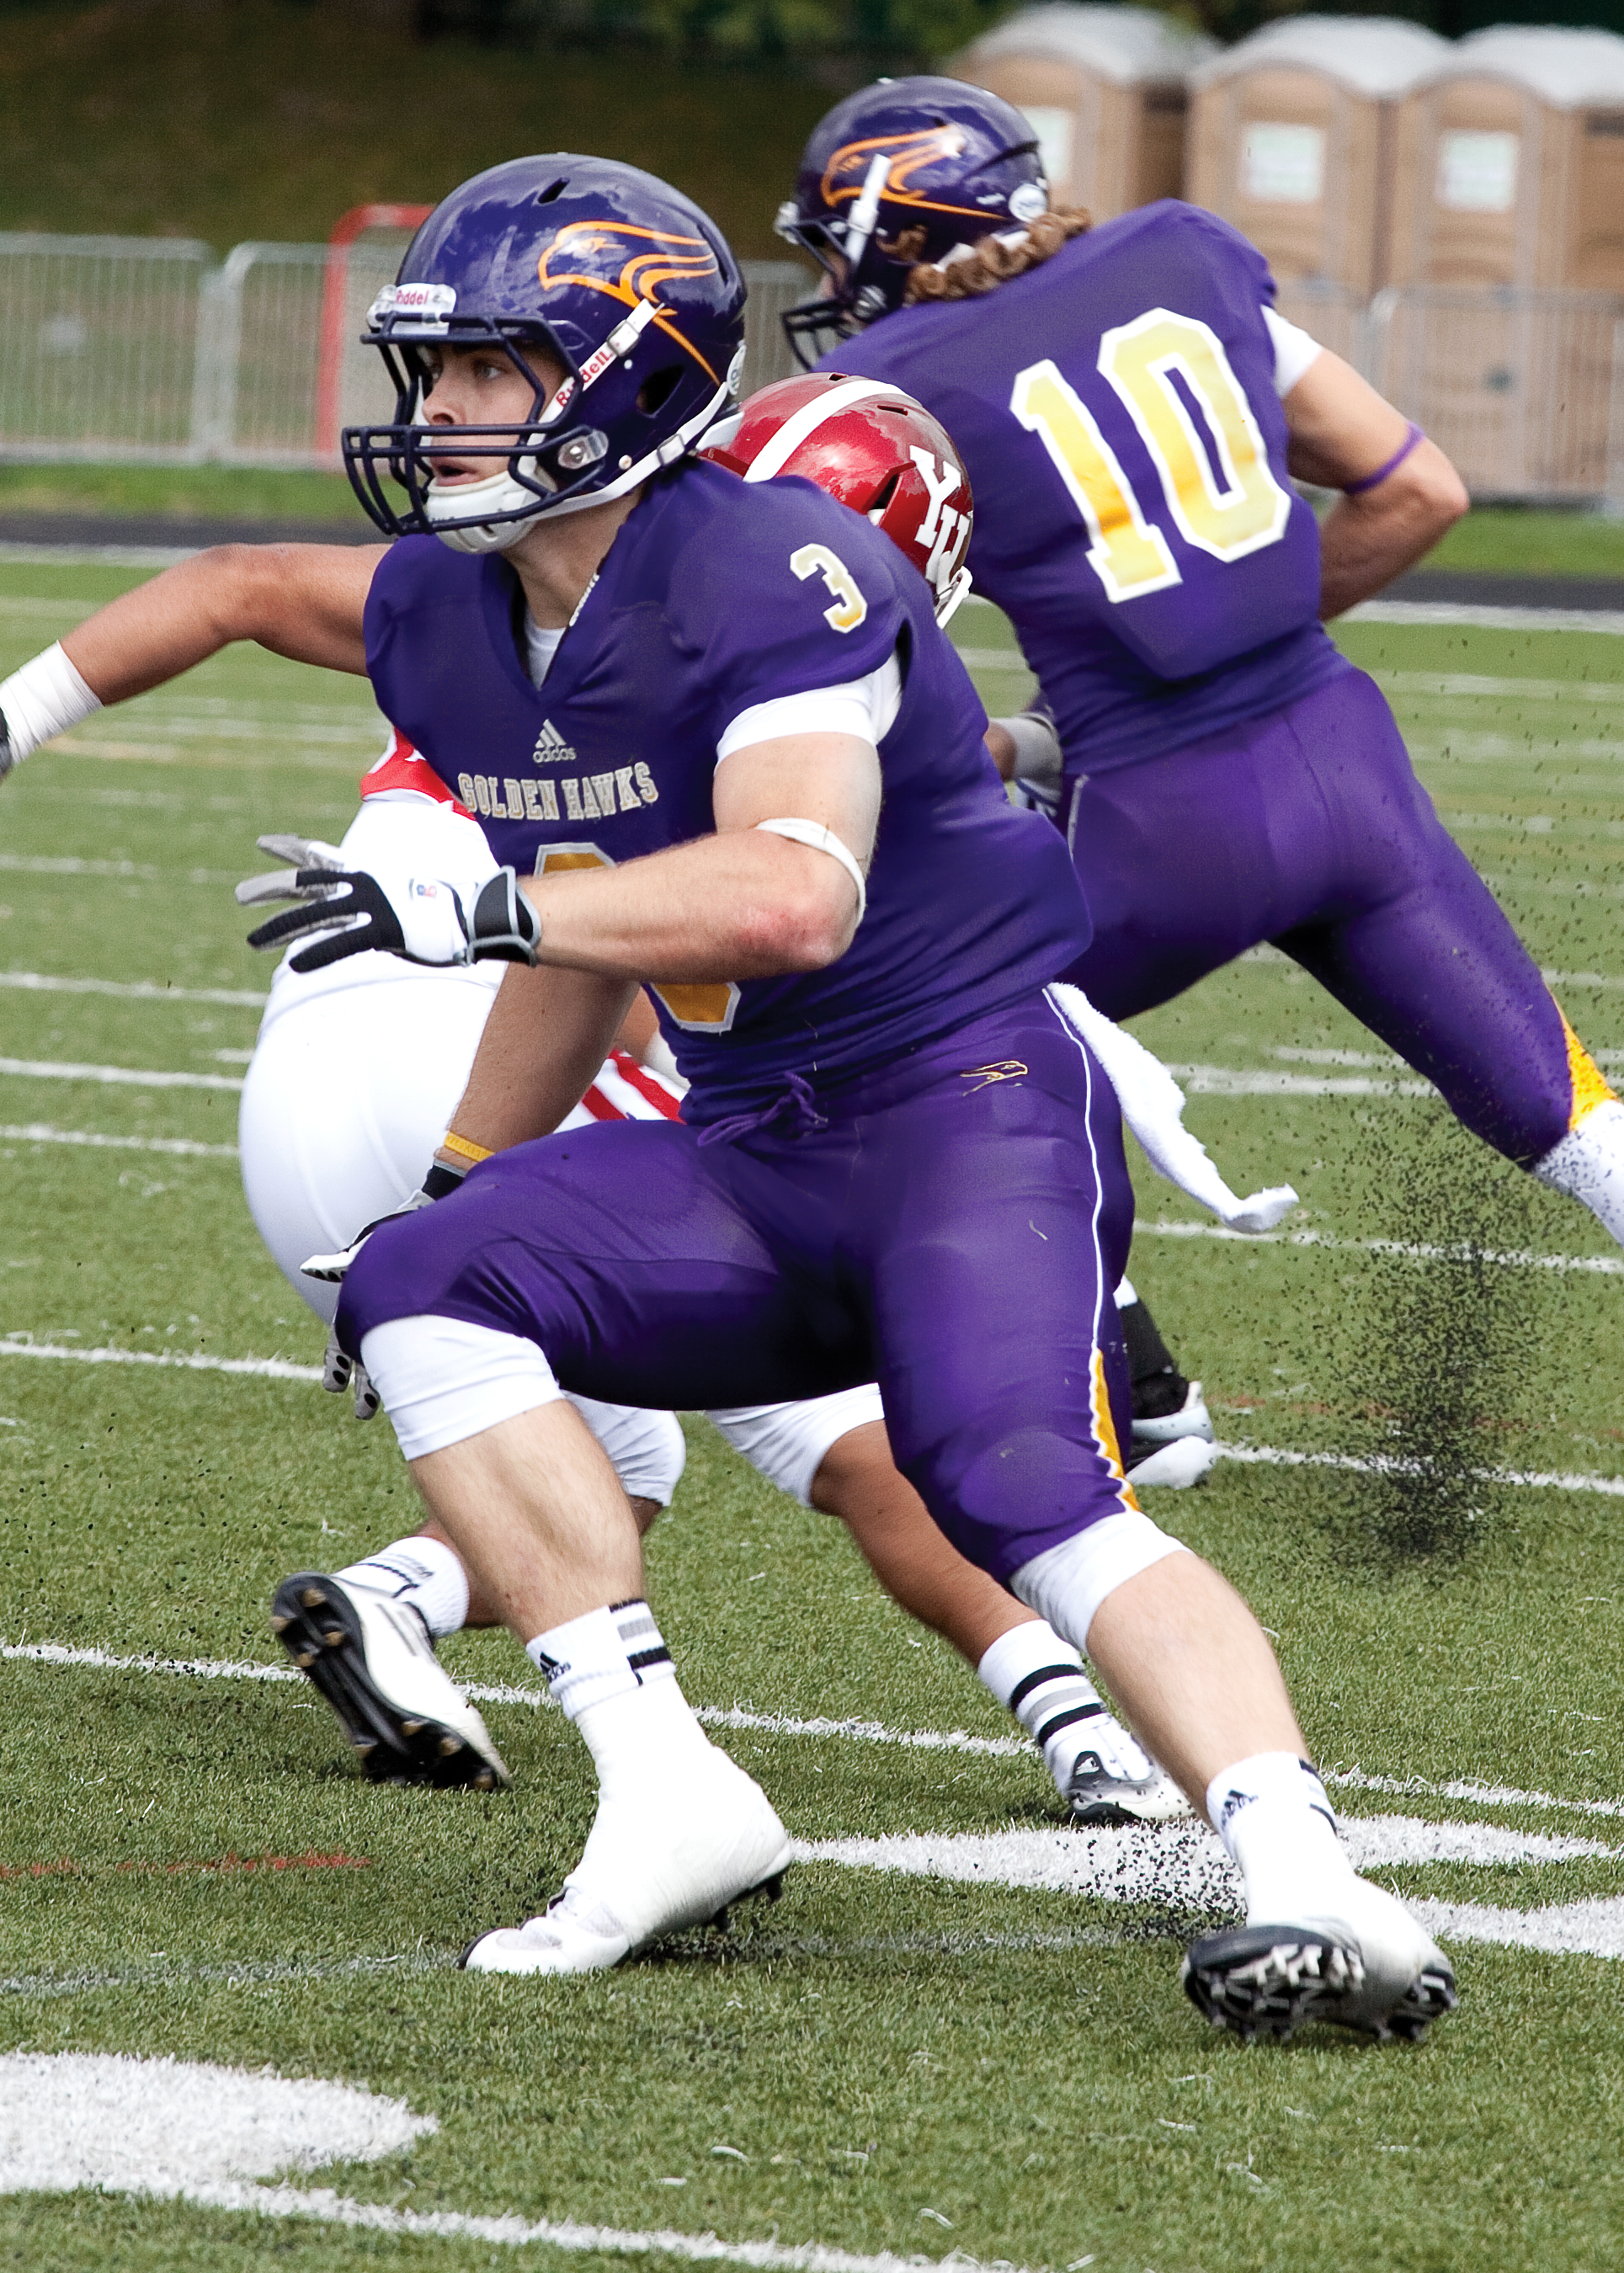 Alex Anthony still has one more year of eligibility if he wanted to come back to Laurier. (File photo by Kate Turner)